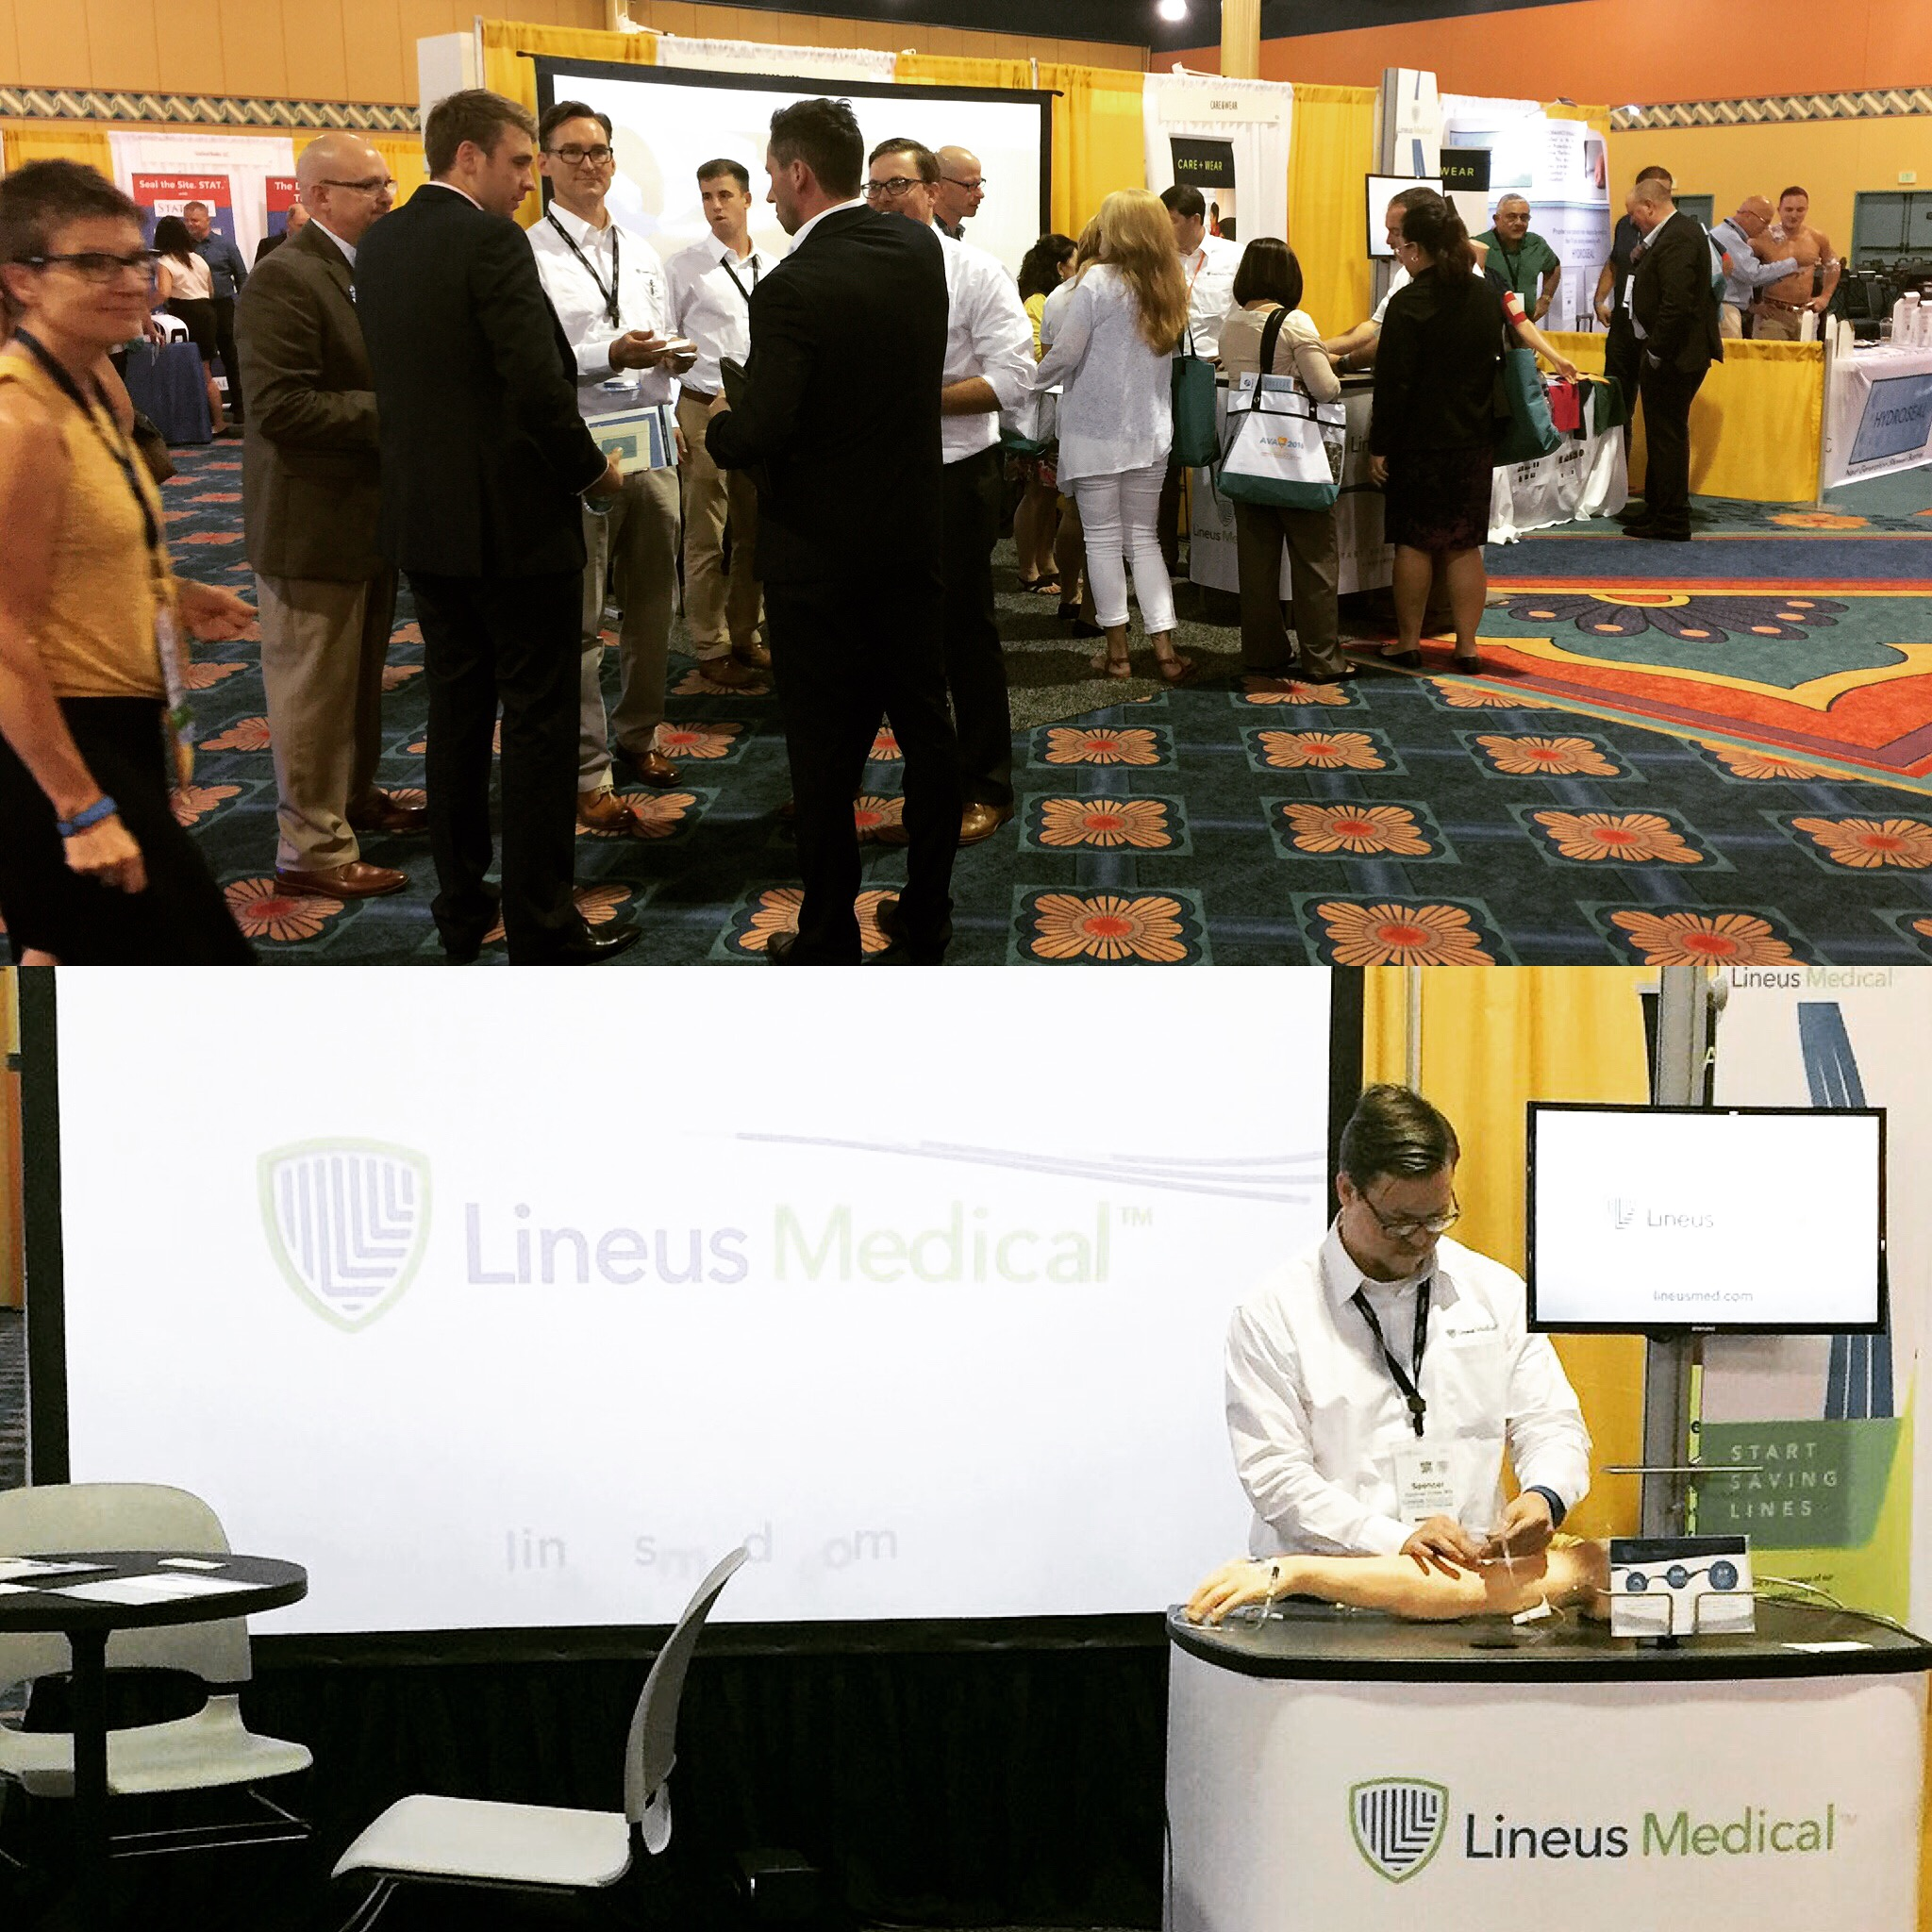 Lineus Medical AVA booth